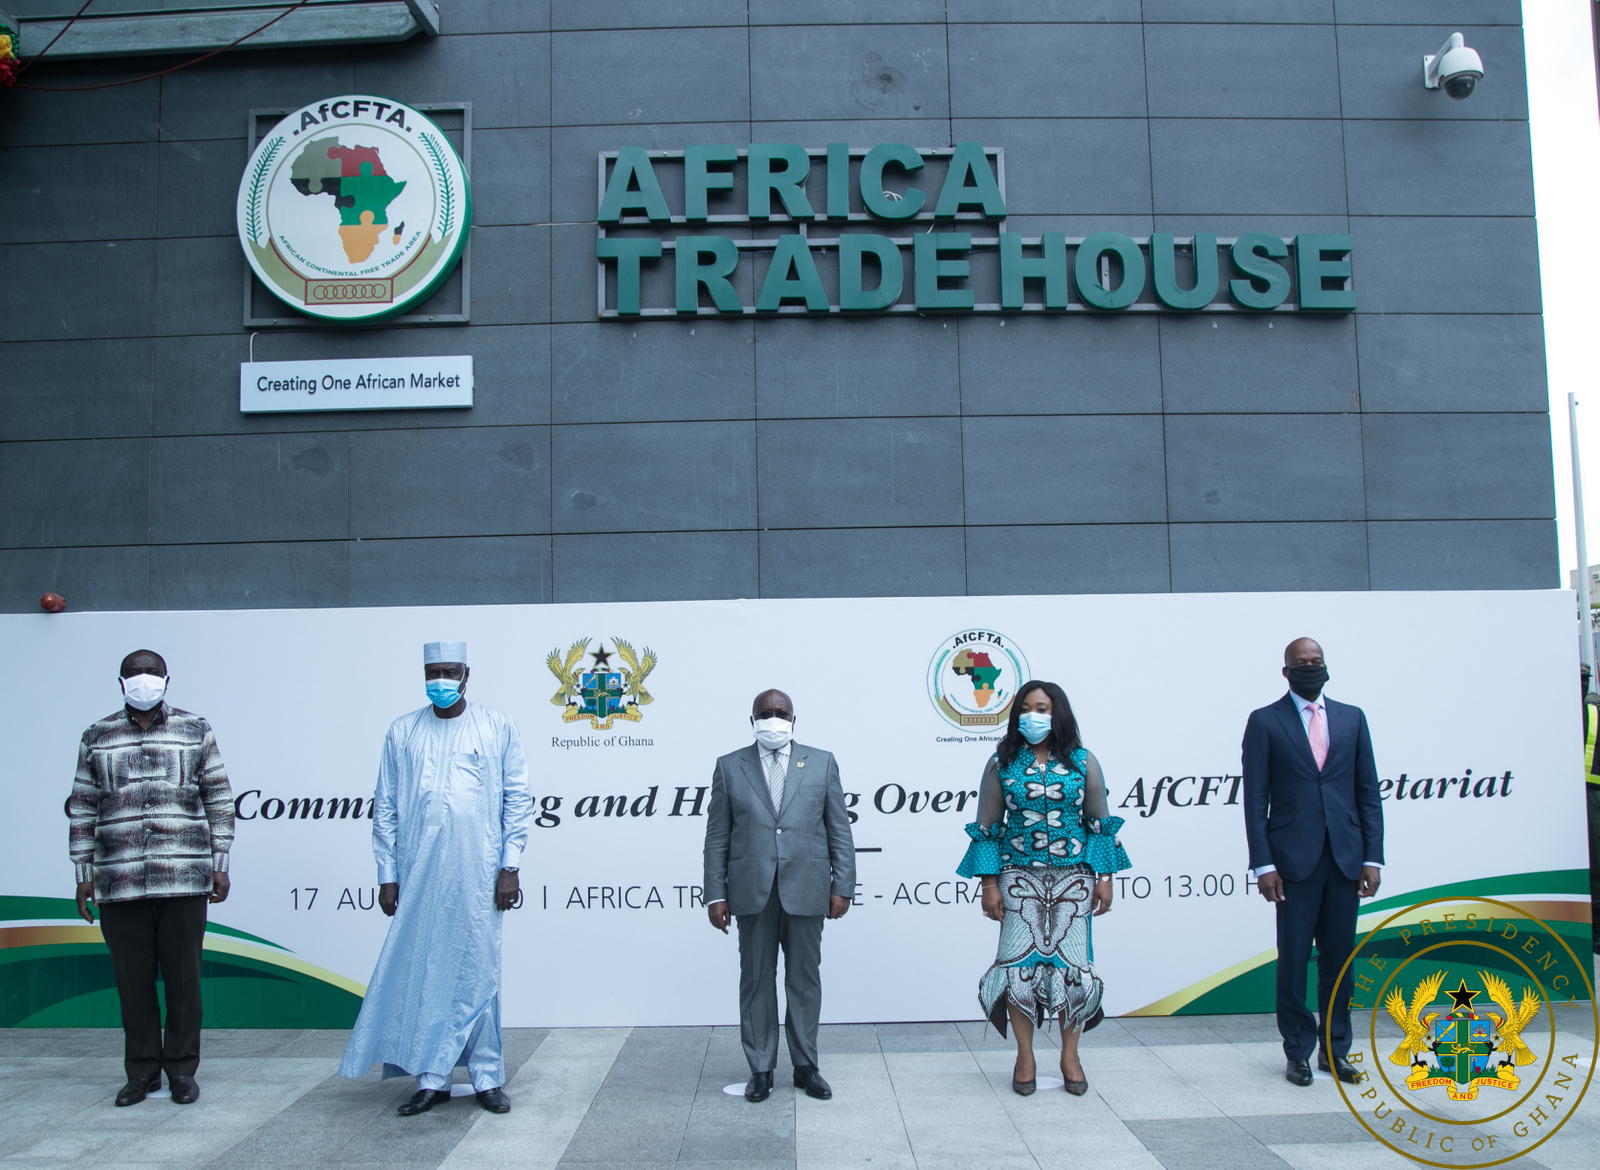 Facilitating the transformational agenda of AfCFTA